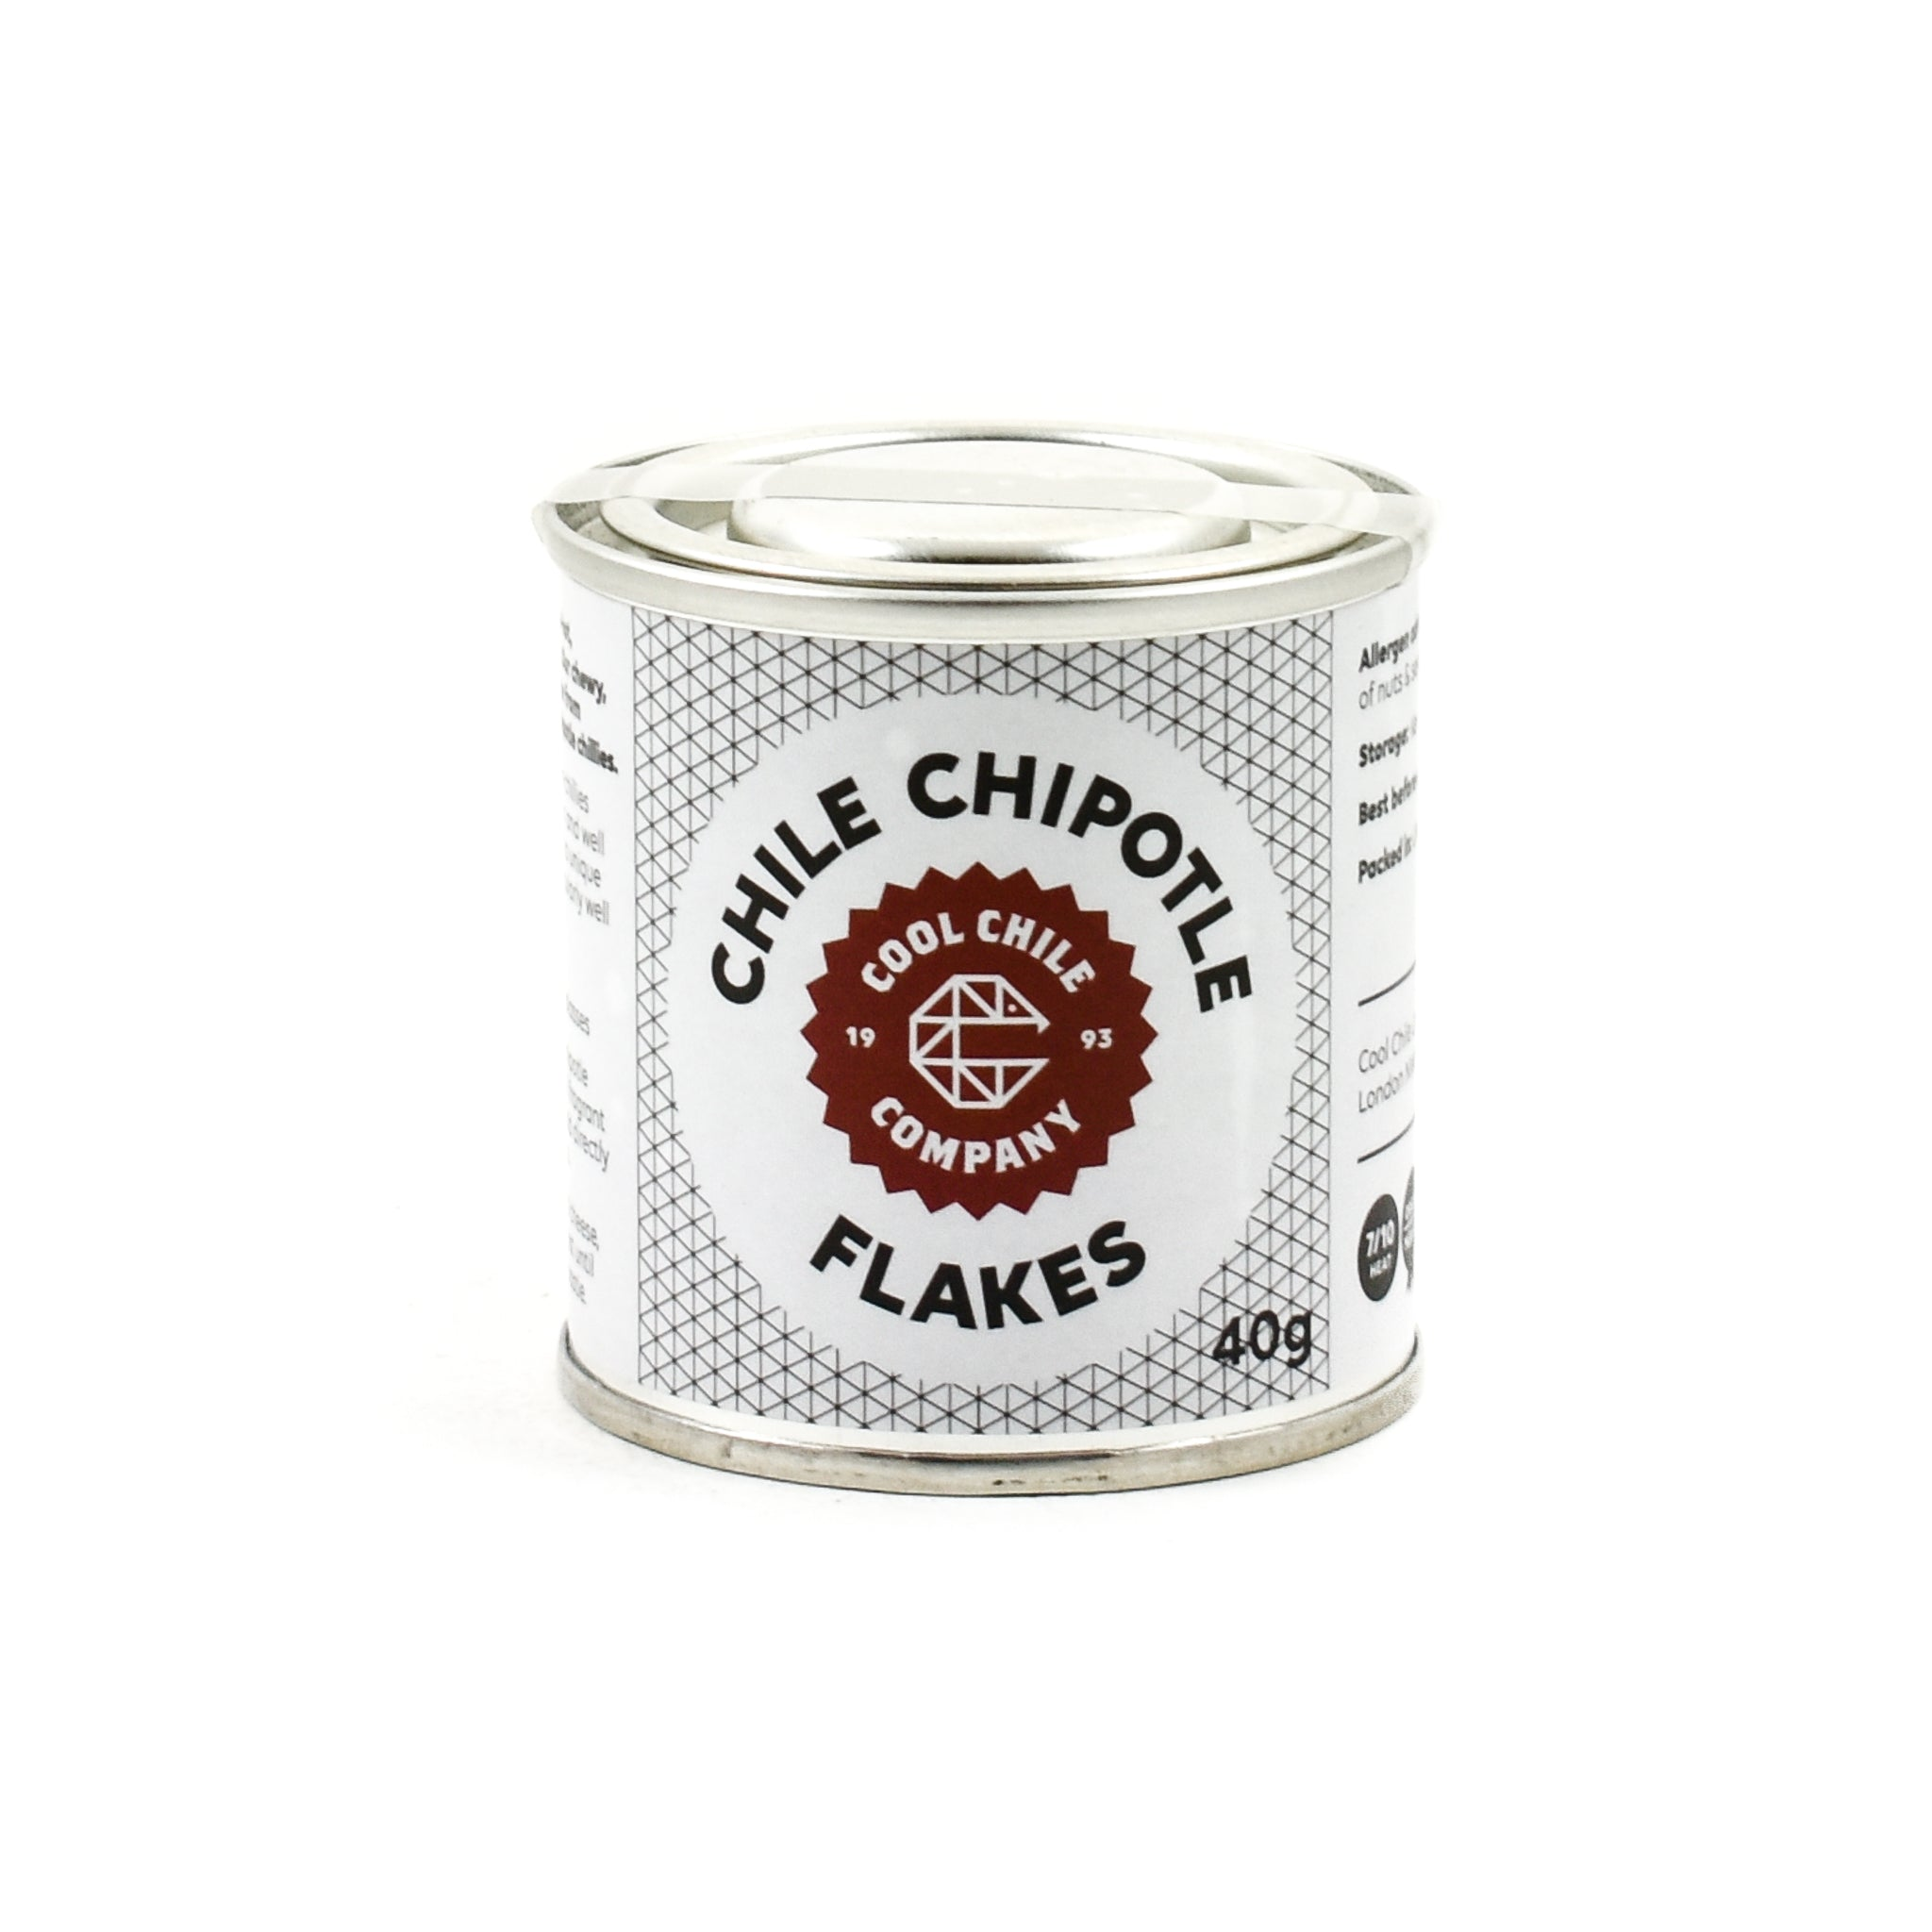 Cool Chile Co Chipotle Flakes 40g Ingredients Herbs & Spices Dried Chillies Mexican Food